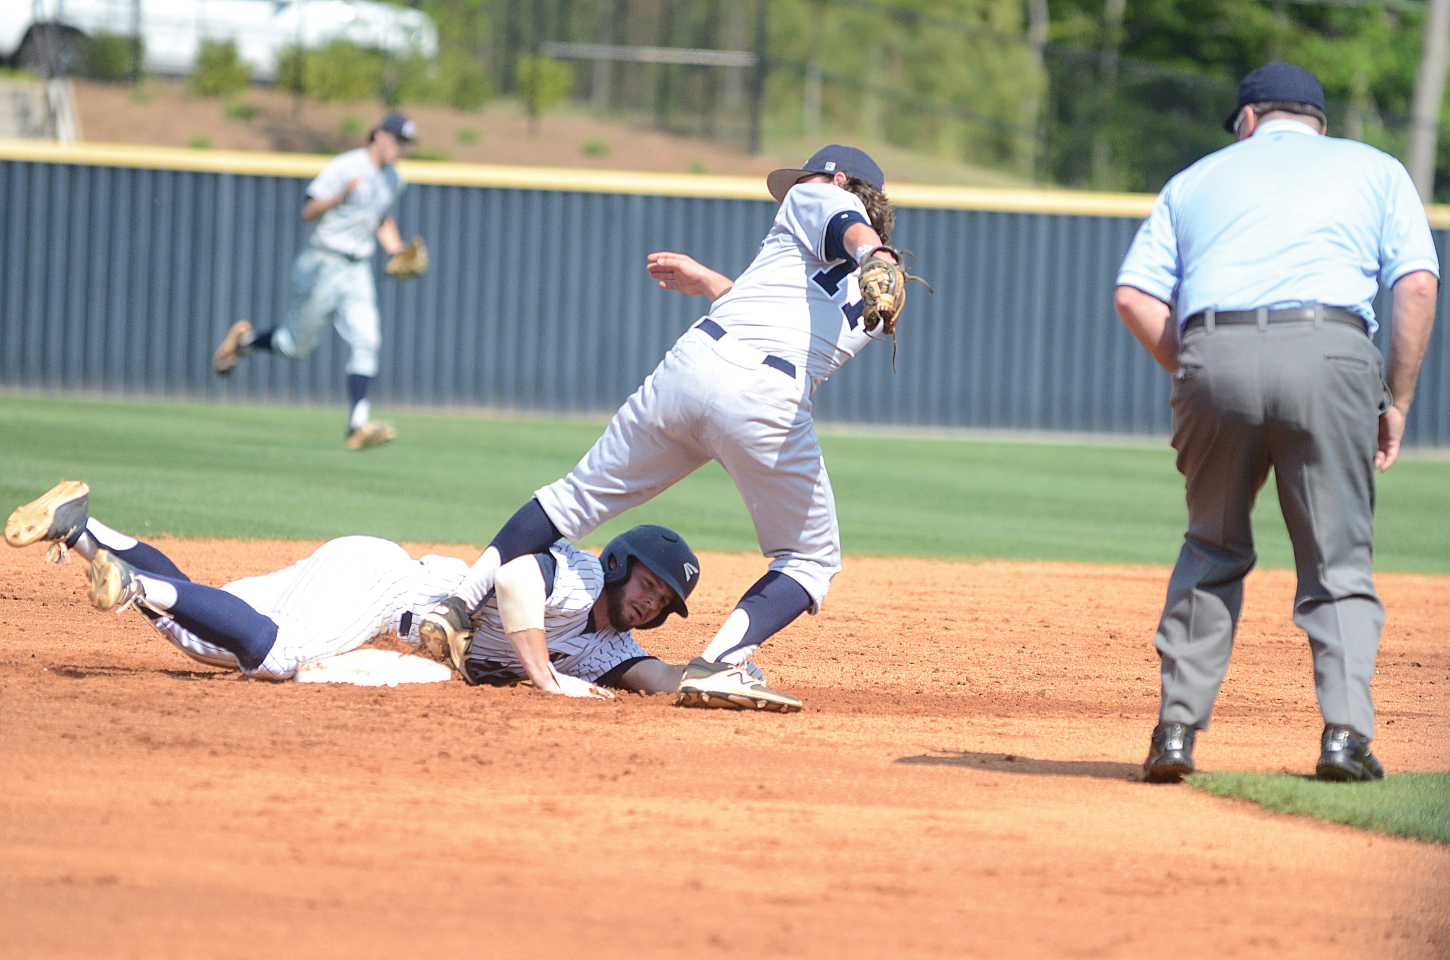 Will Wilbanks looks for a call after sliding into second during a hit-and-run attempt in Game 1.